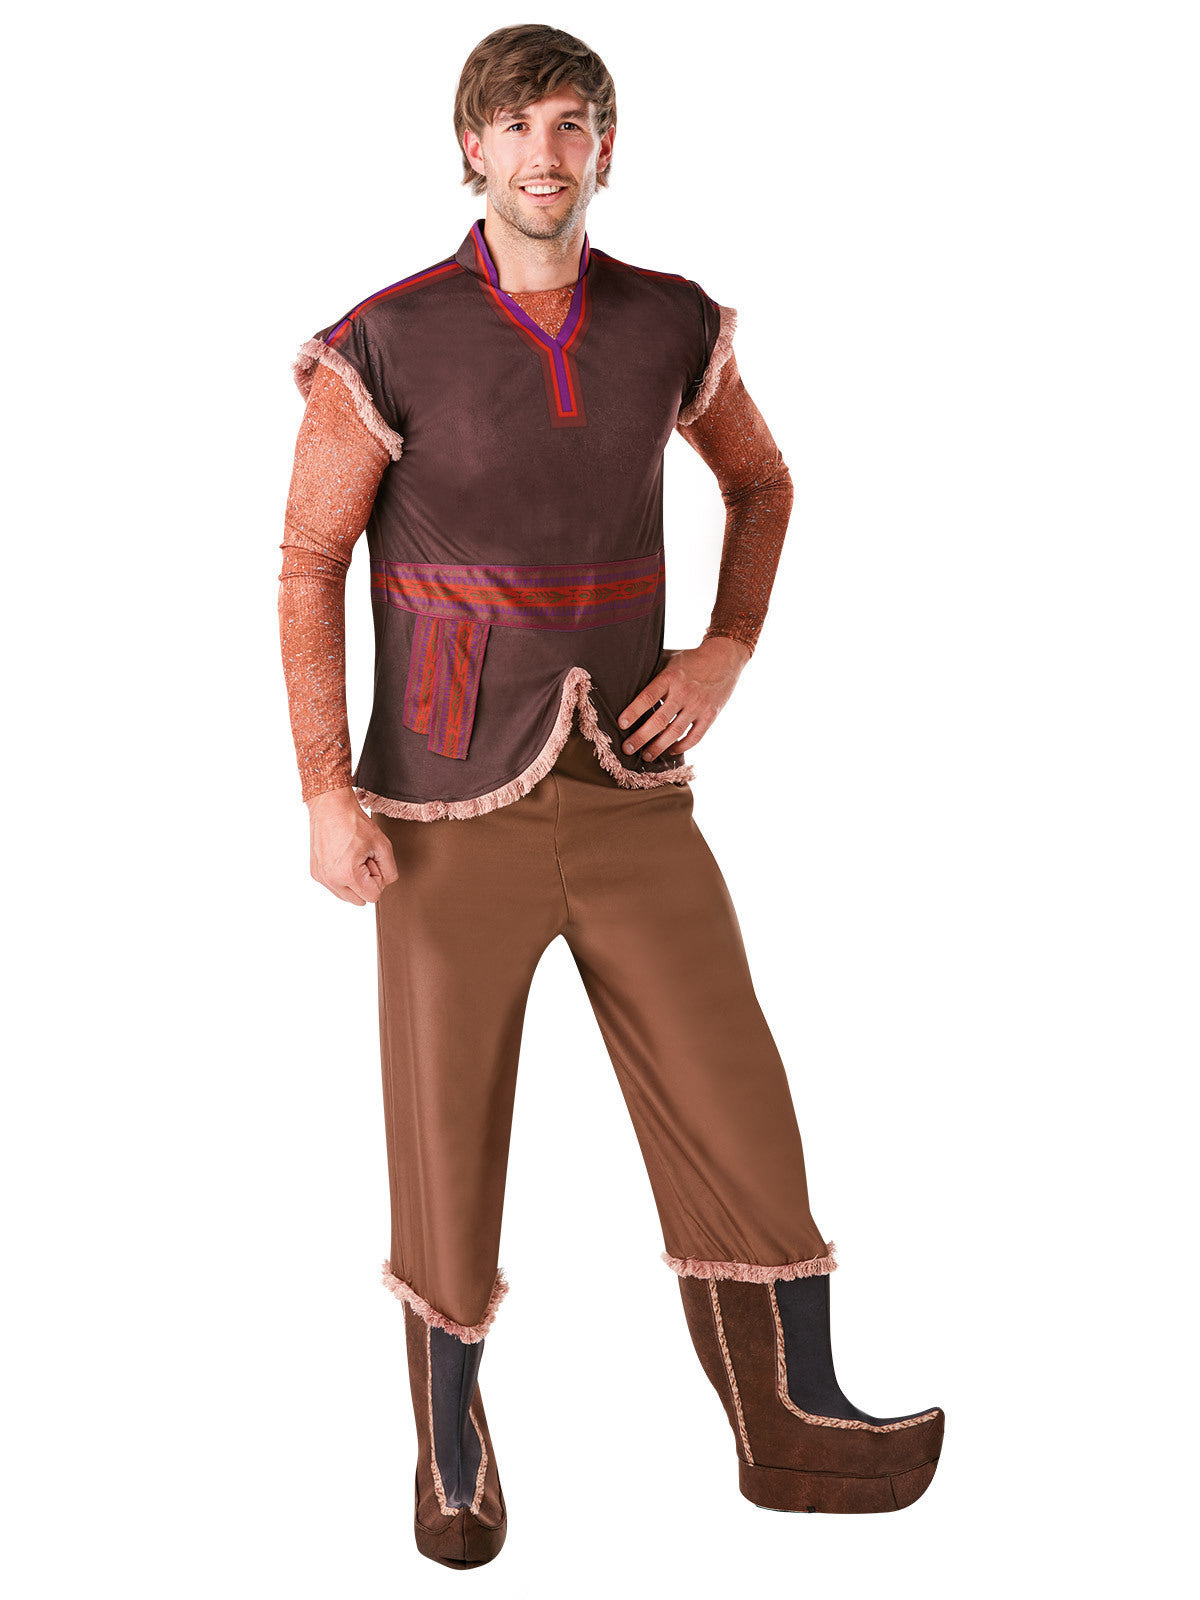 Kristoff Frozen 2 Deluxe Costume - Buy Online Only